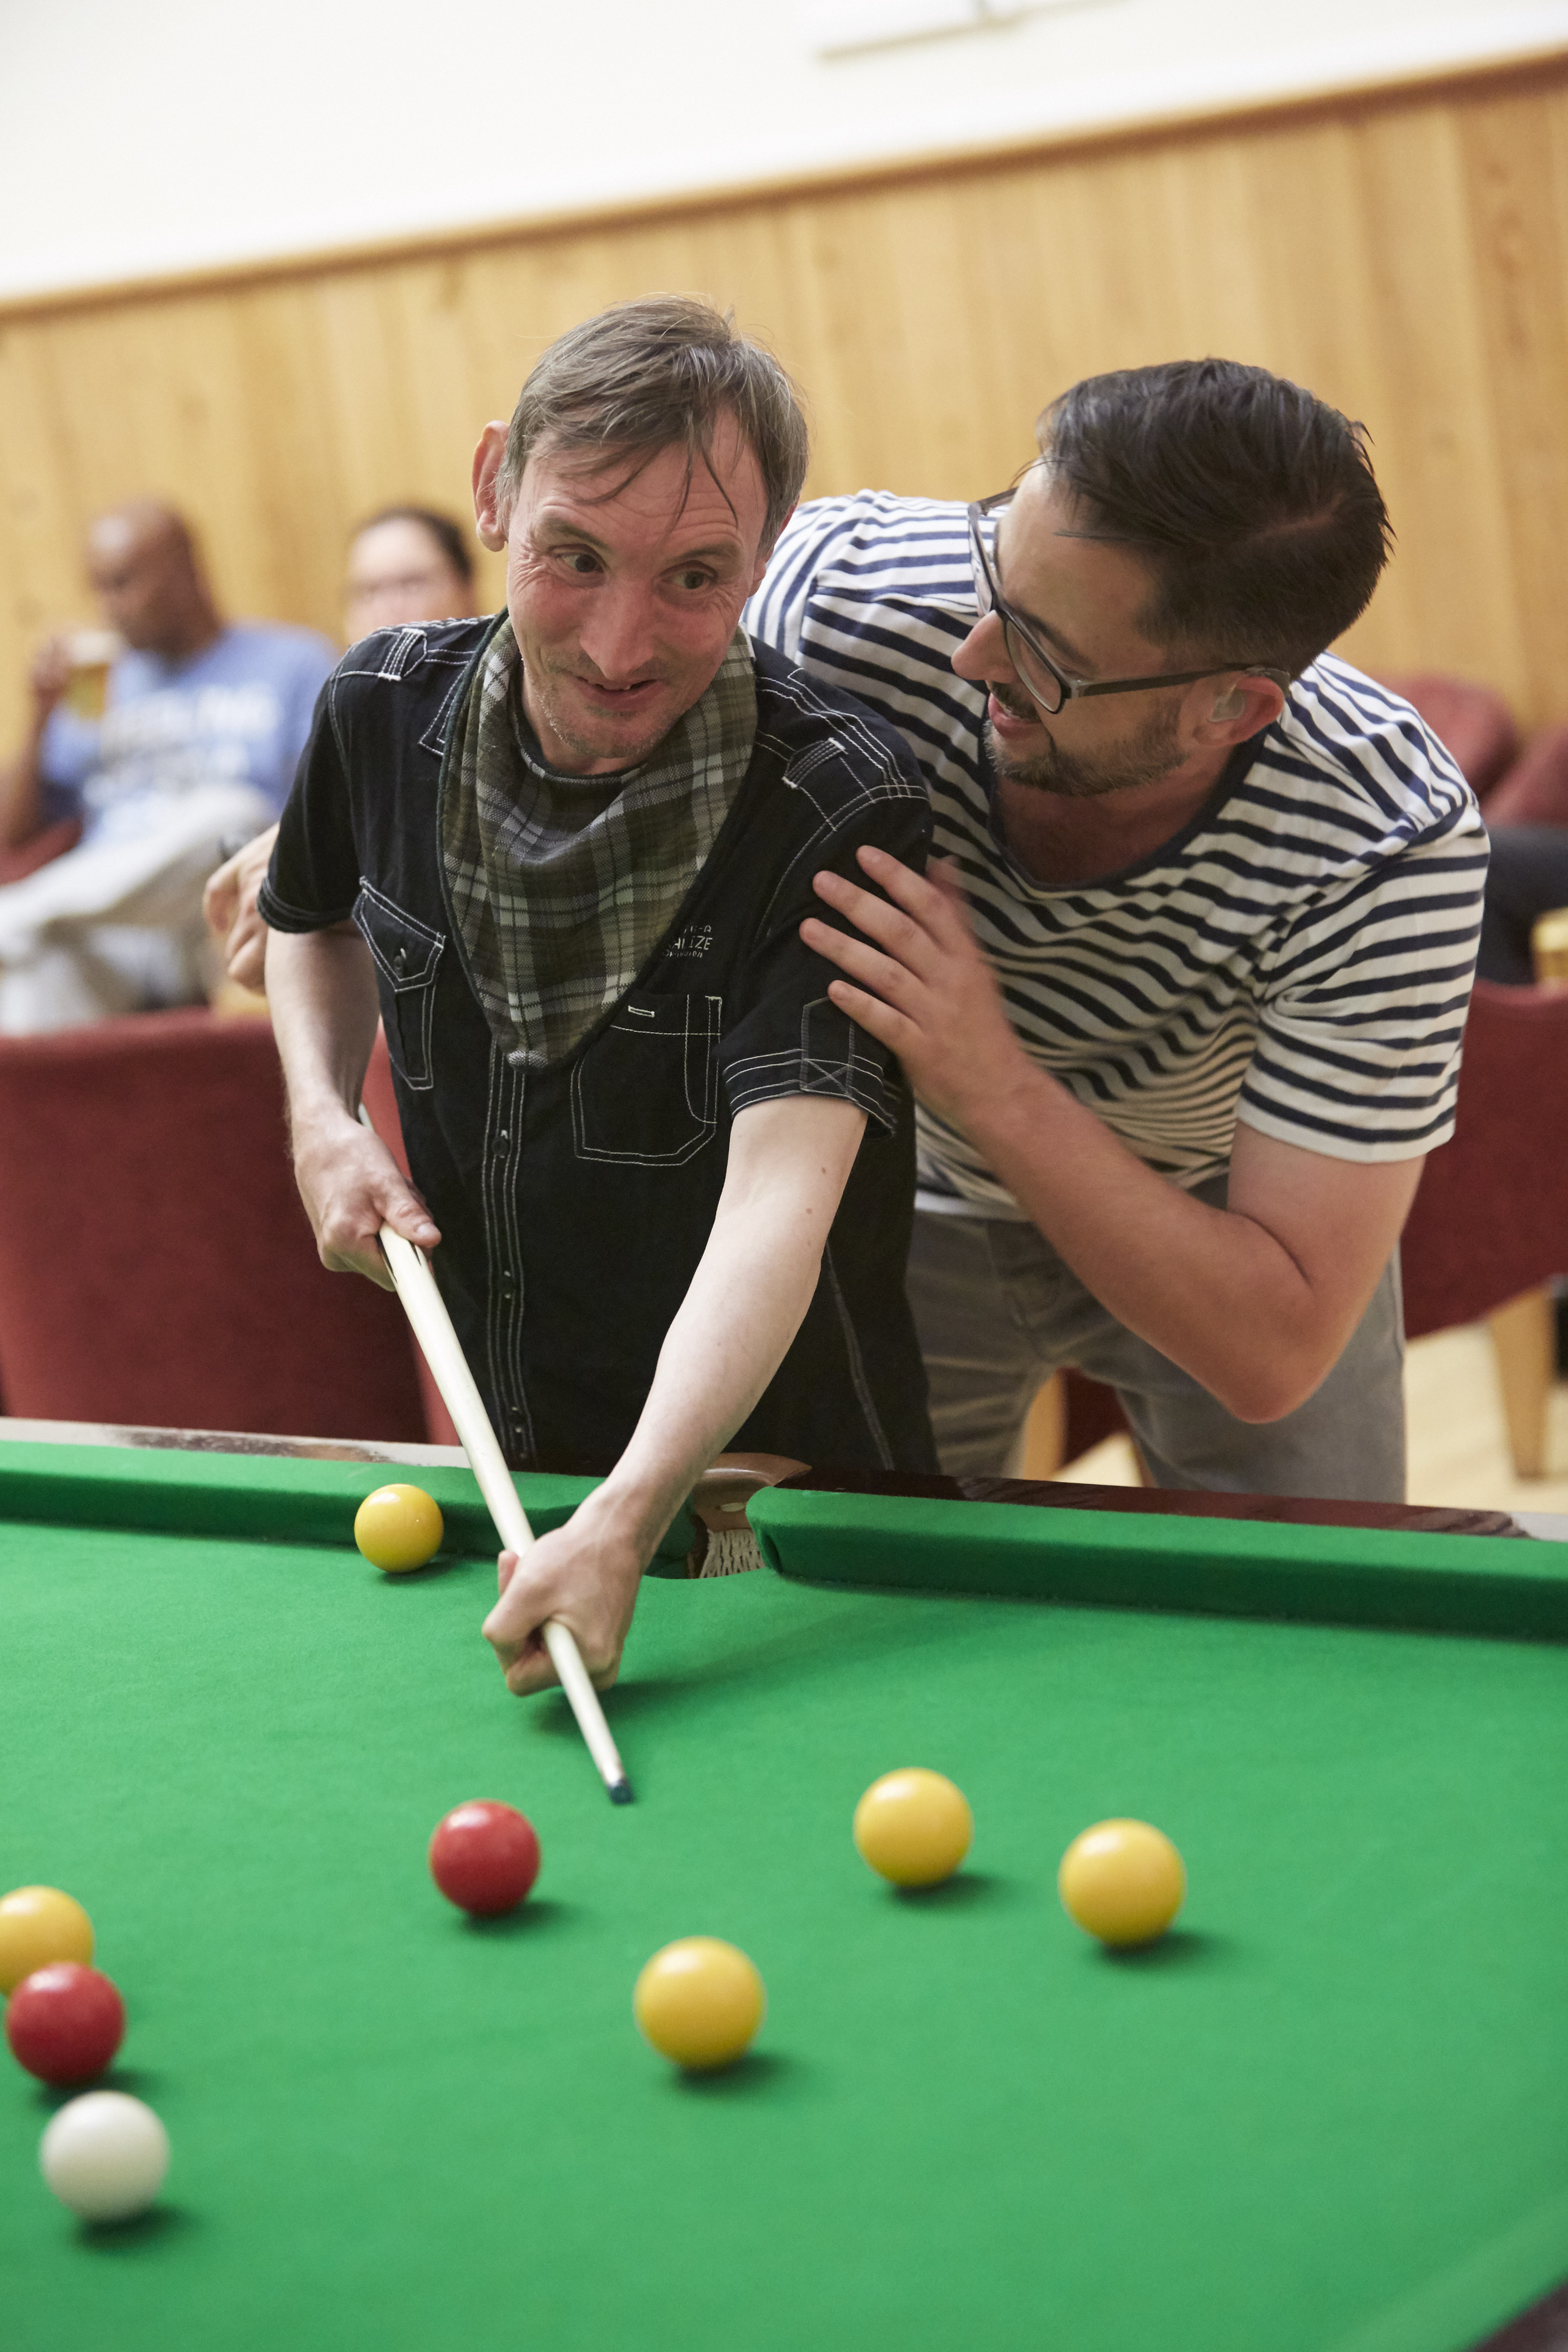 Man holding cue and leaning over pool table with man stood with arm around him leaning down and smiling